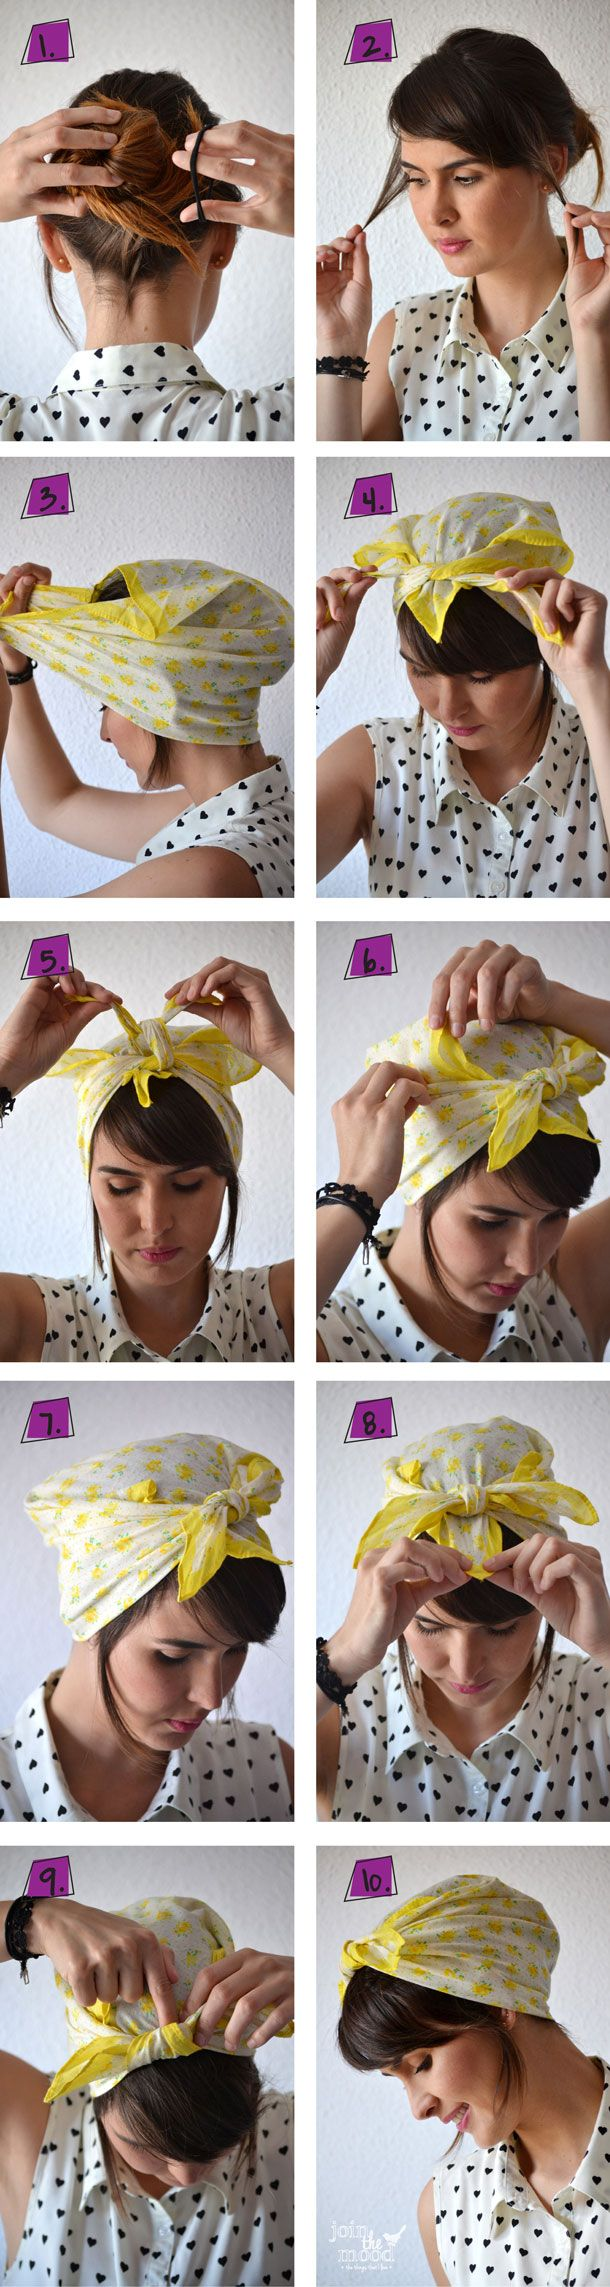 HAIRSTYLE WITH BANDANA PART 4/ PEINADO CON PAÑOLETA PARTE 4